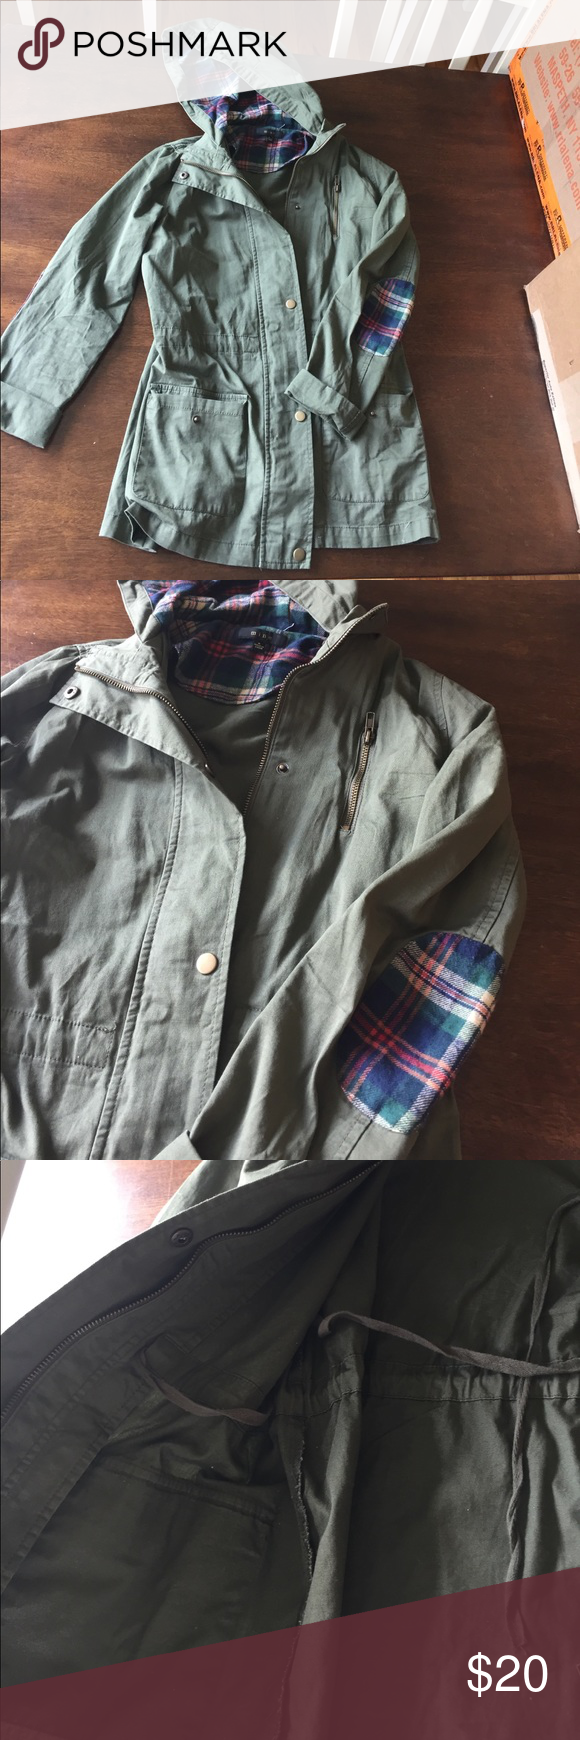 Olive cargo jacket Lightweight olive green cargo jacket with adorable flannel lined hoodie and elbow patches! Interior has drawstring for a cinched waist look, lightweight and perfect for chilly spring days or nights! Worn once in excellent like new condition Jackets & Coats Utility Jackets